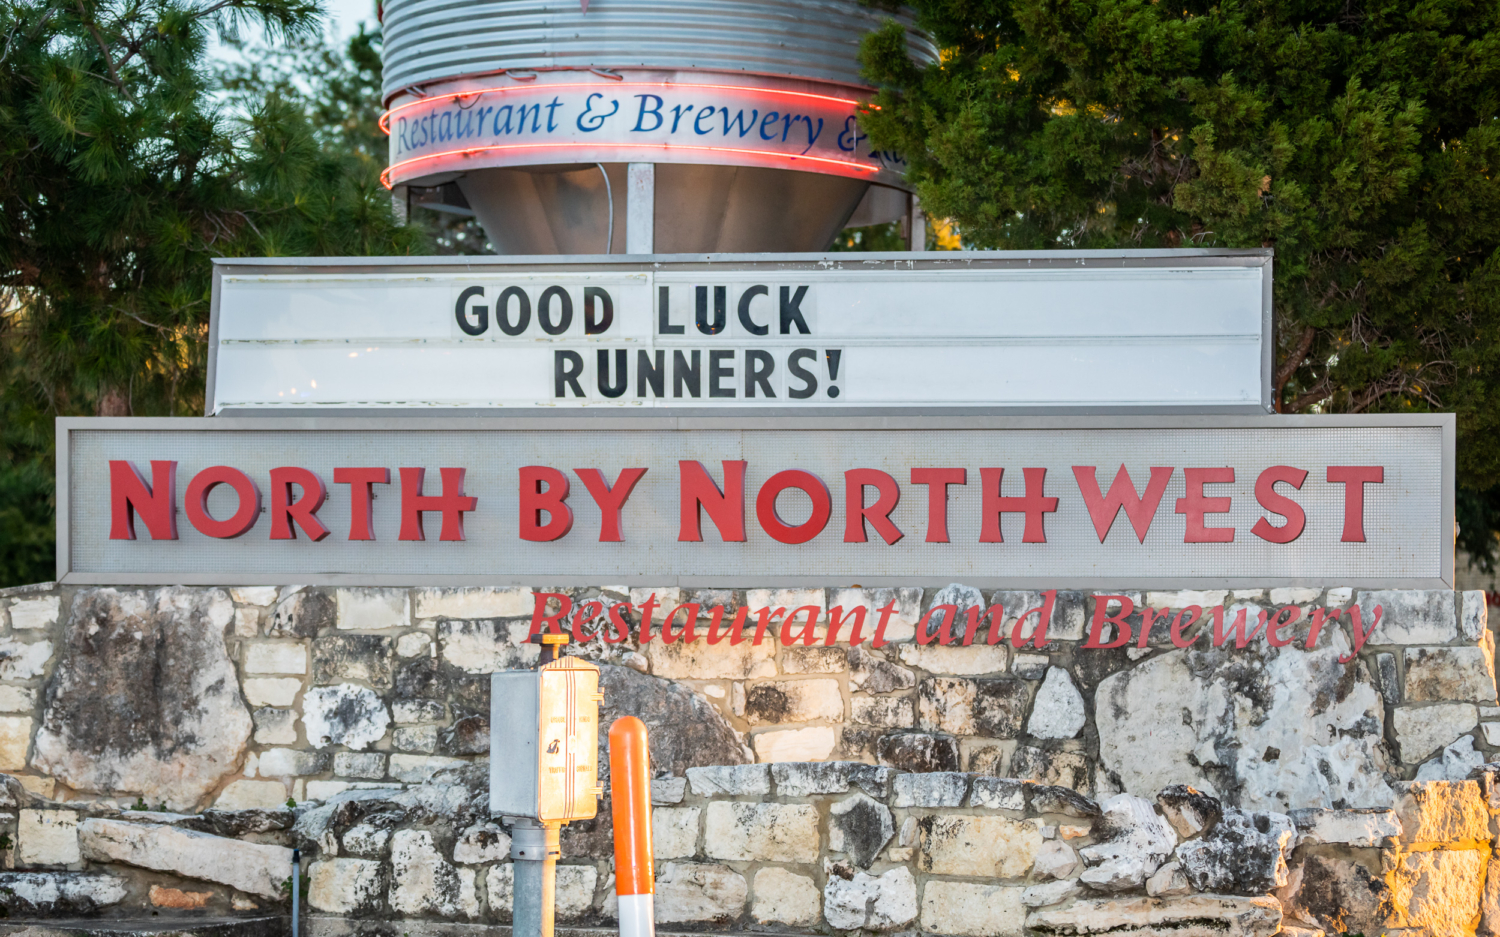 North by Northwest sign greets runners during the 2019 3M Half Marathon. Check out the various locations in this blog post along the 3M Half Marathon course and get to know Austin.